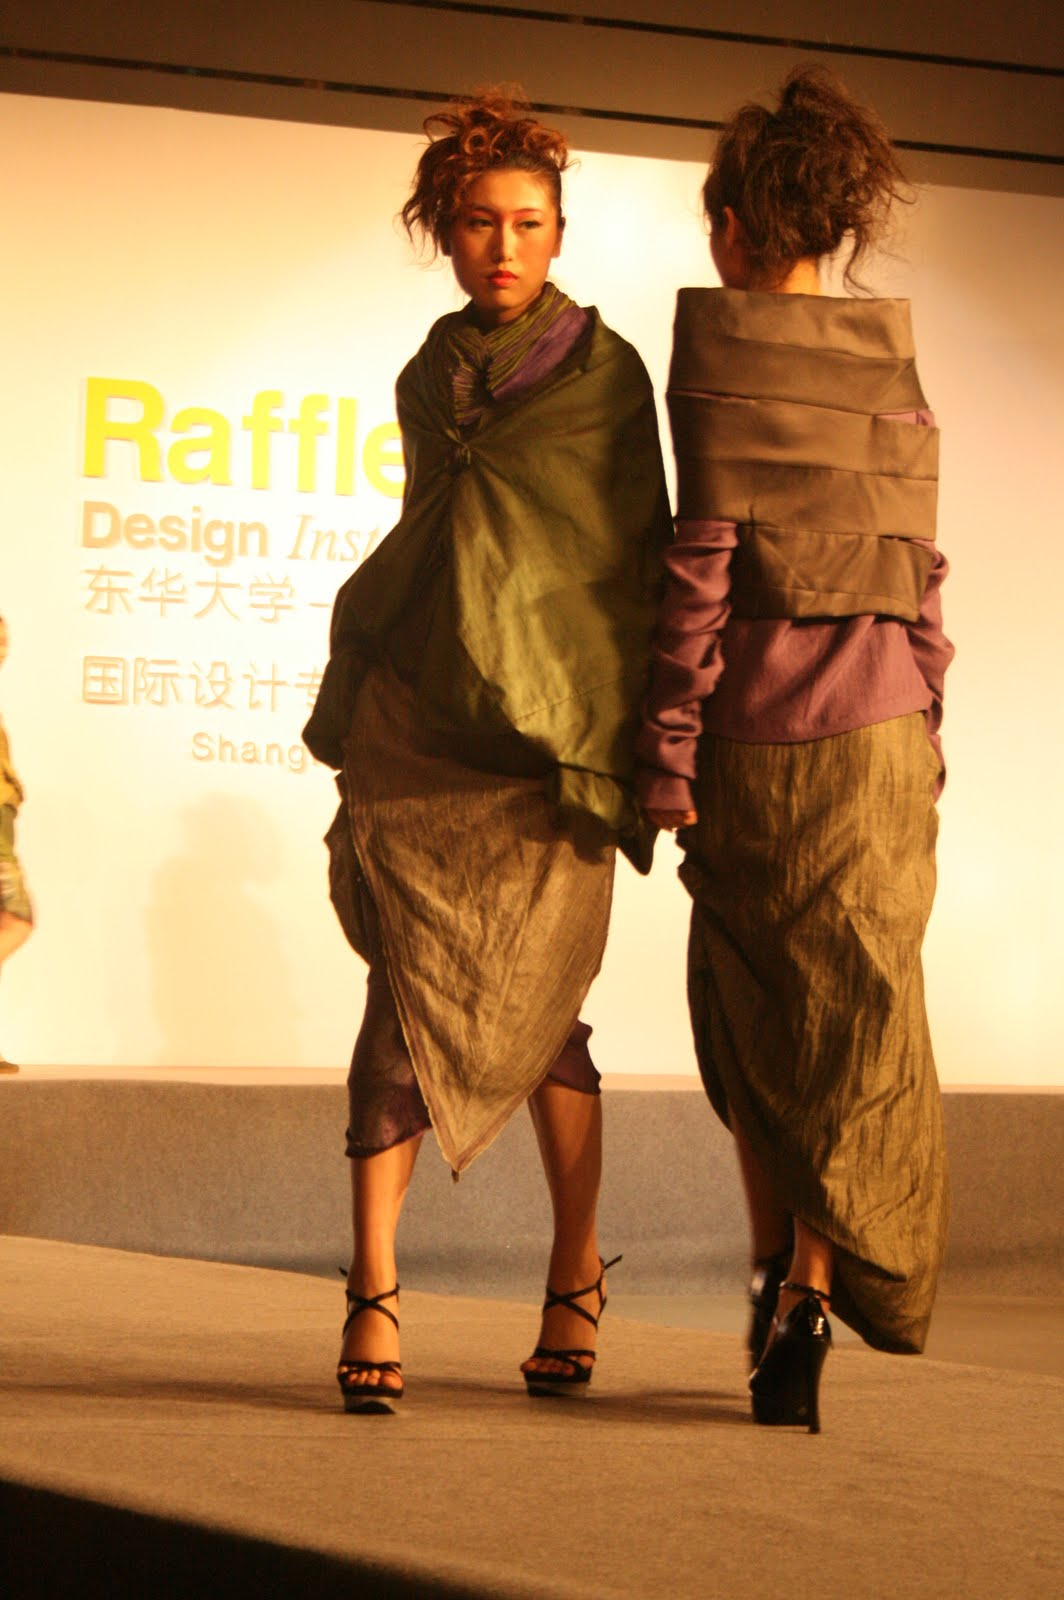 Raffles Design Institute Shanghai Graduates Fashion Show Beauty Fashion Design